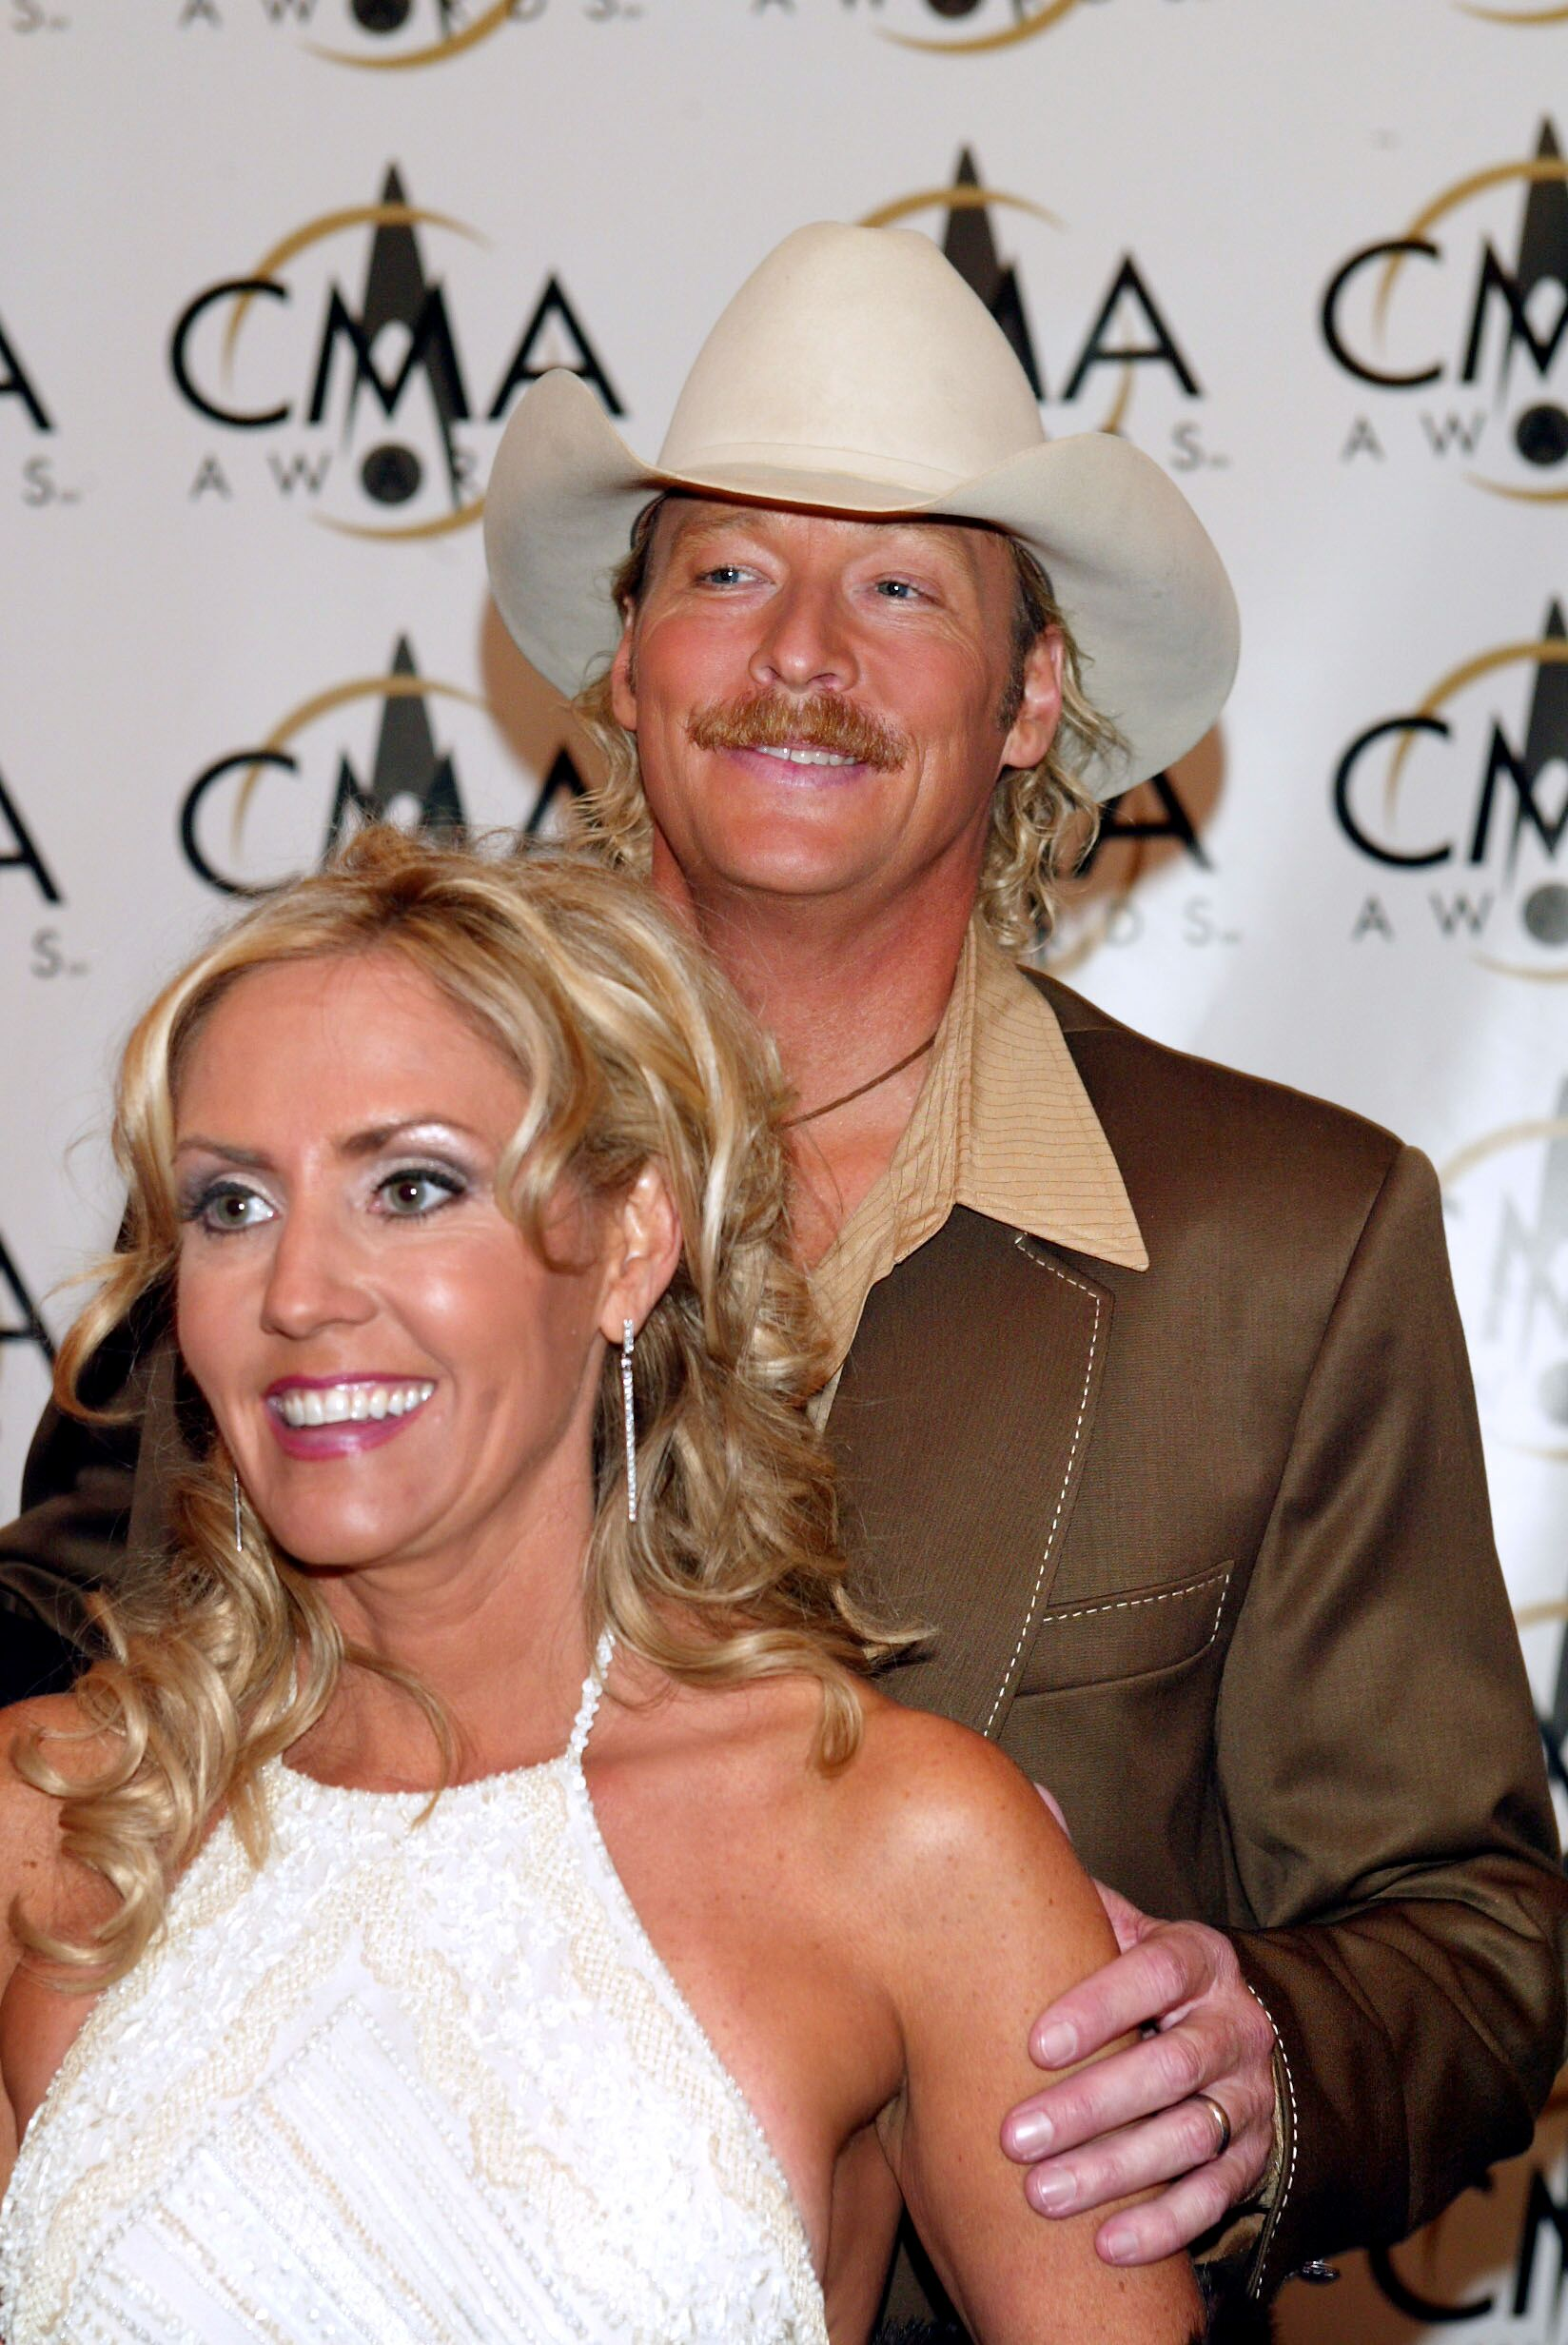 Alan Jackson arrives with his wife Denise at the 36th annual Country Music Association Awards at the Grand Ole Opry House in Nashville, Tennessee, November 6, 2002 | Photo: Getty Images